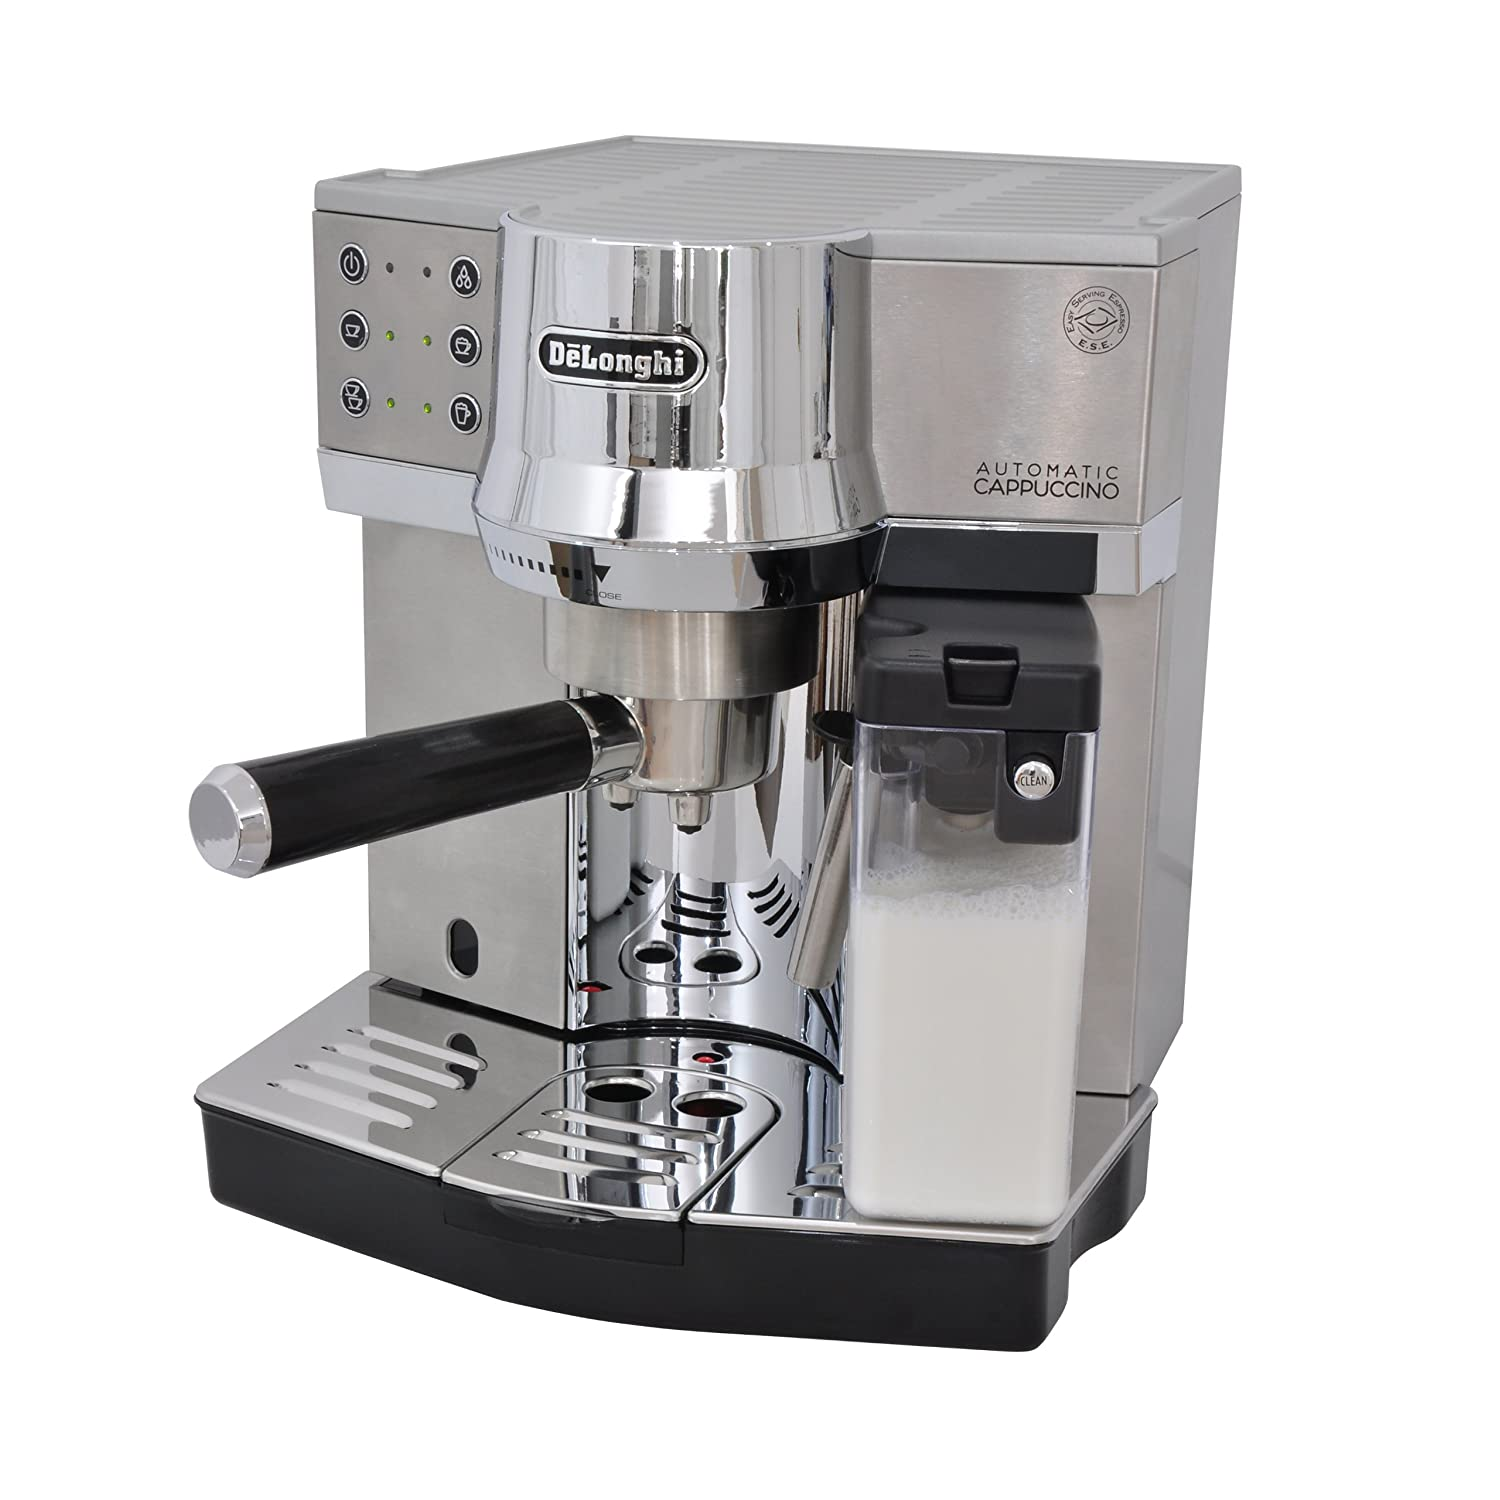 delonghi ec850 m one touch pump espresso coffee machine. Black Bedroom Furniture Sets. Home Design Ideas